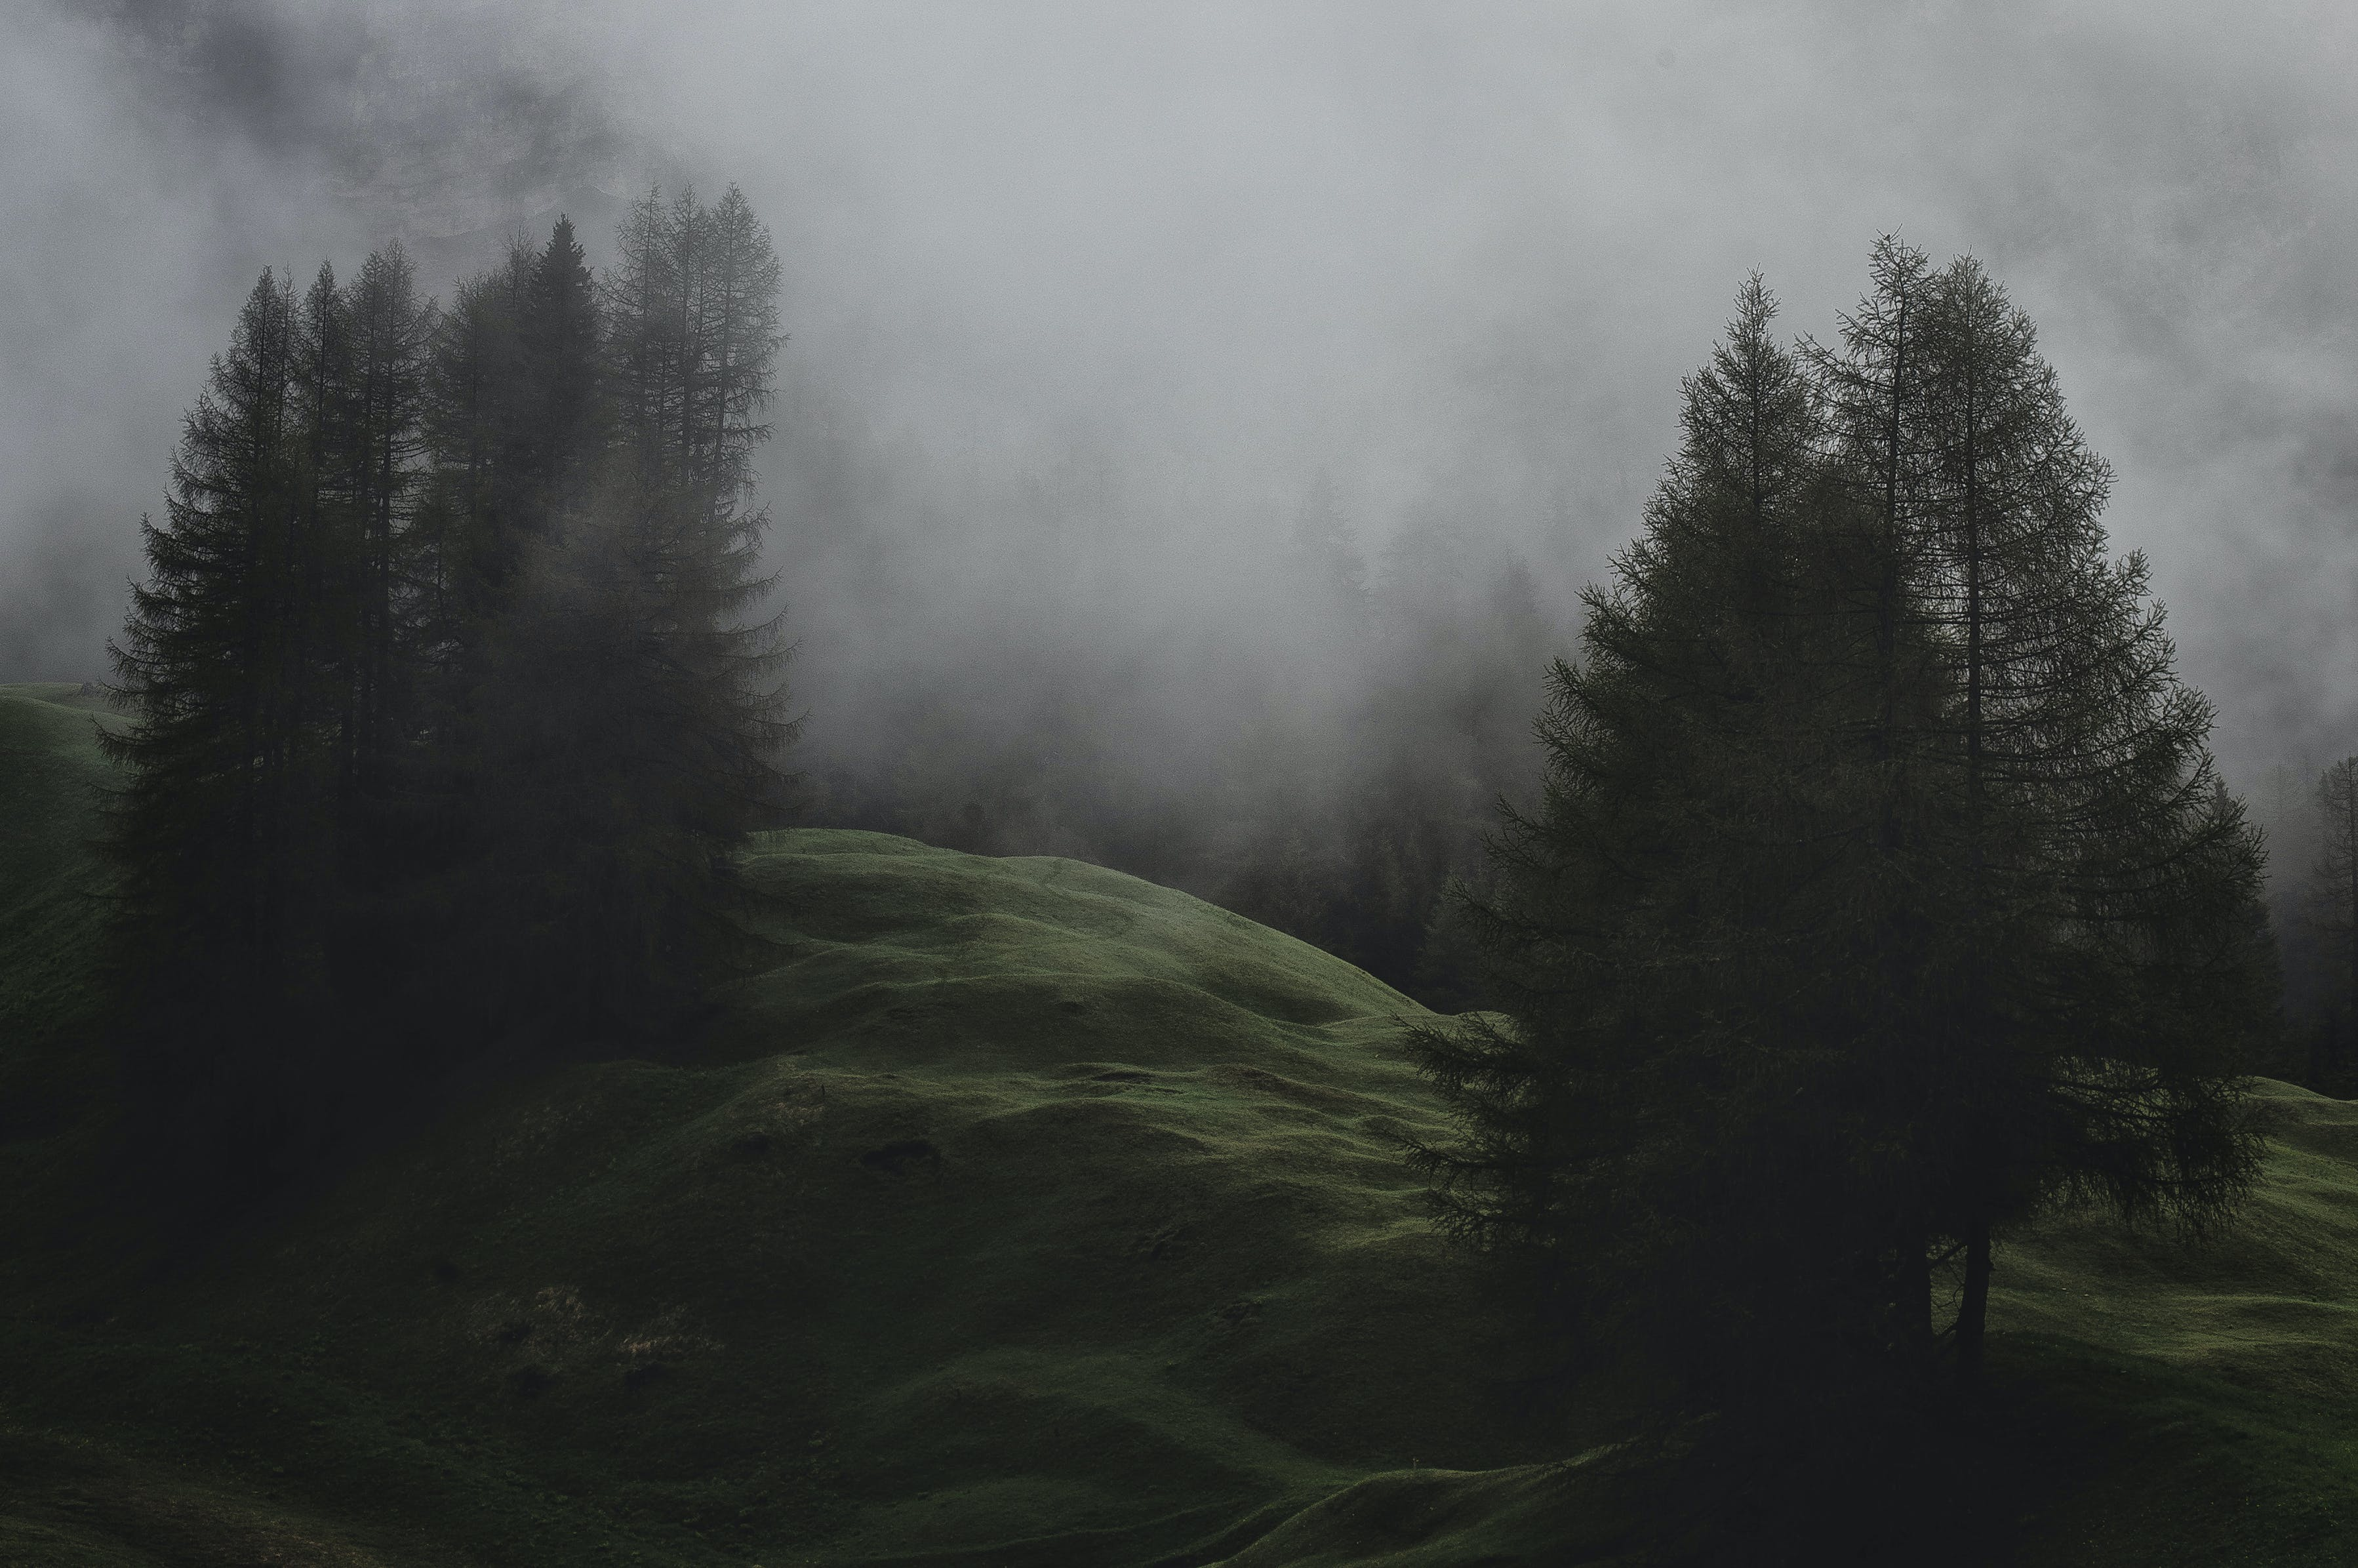 Low-light Photo of Mountain With Pine Trees Covered With Fogs